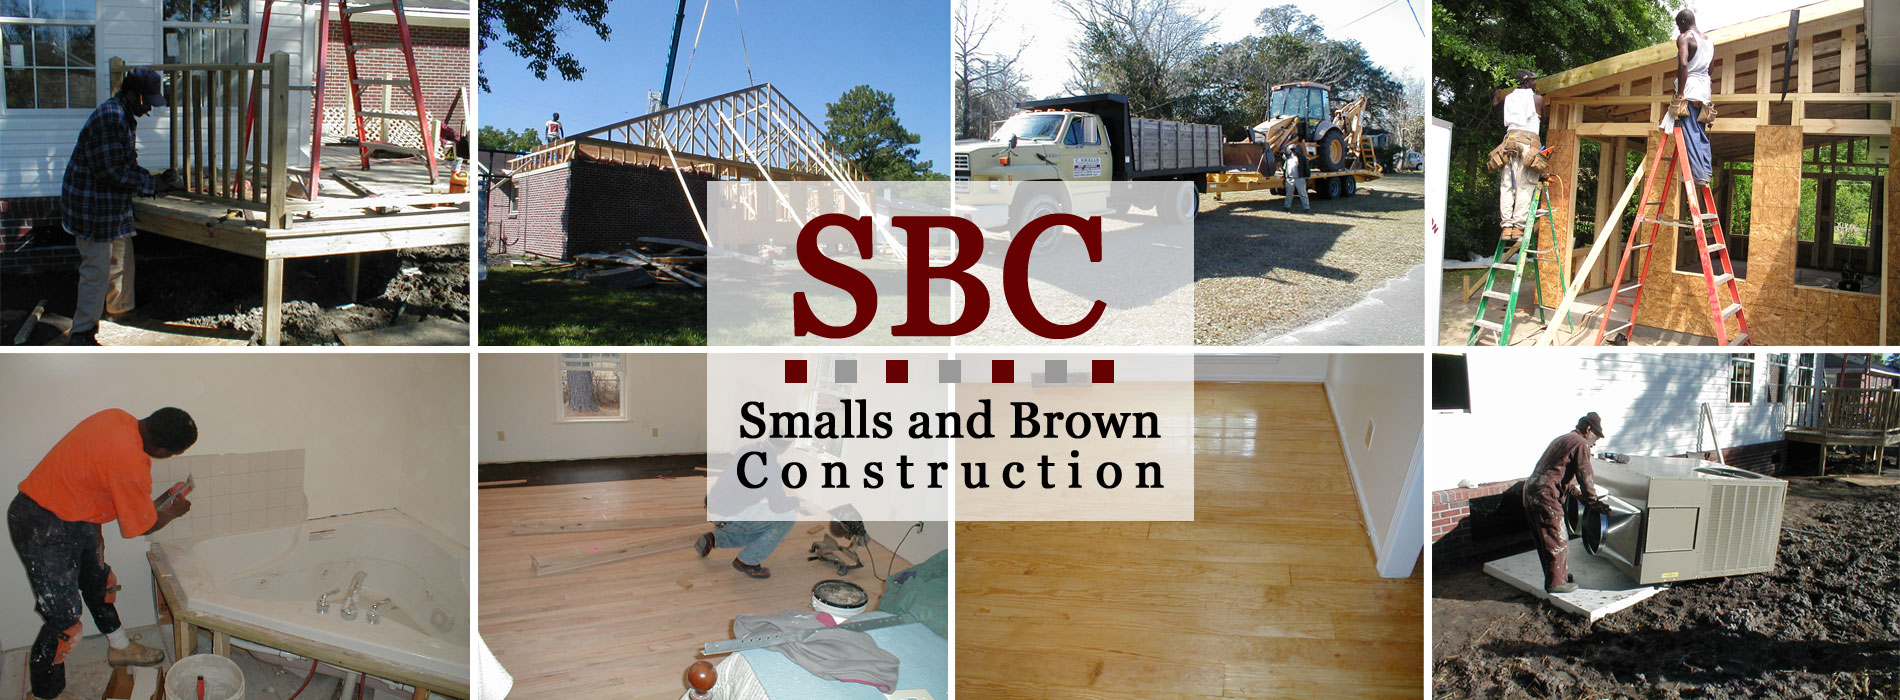 Smalls and Brown Construction